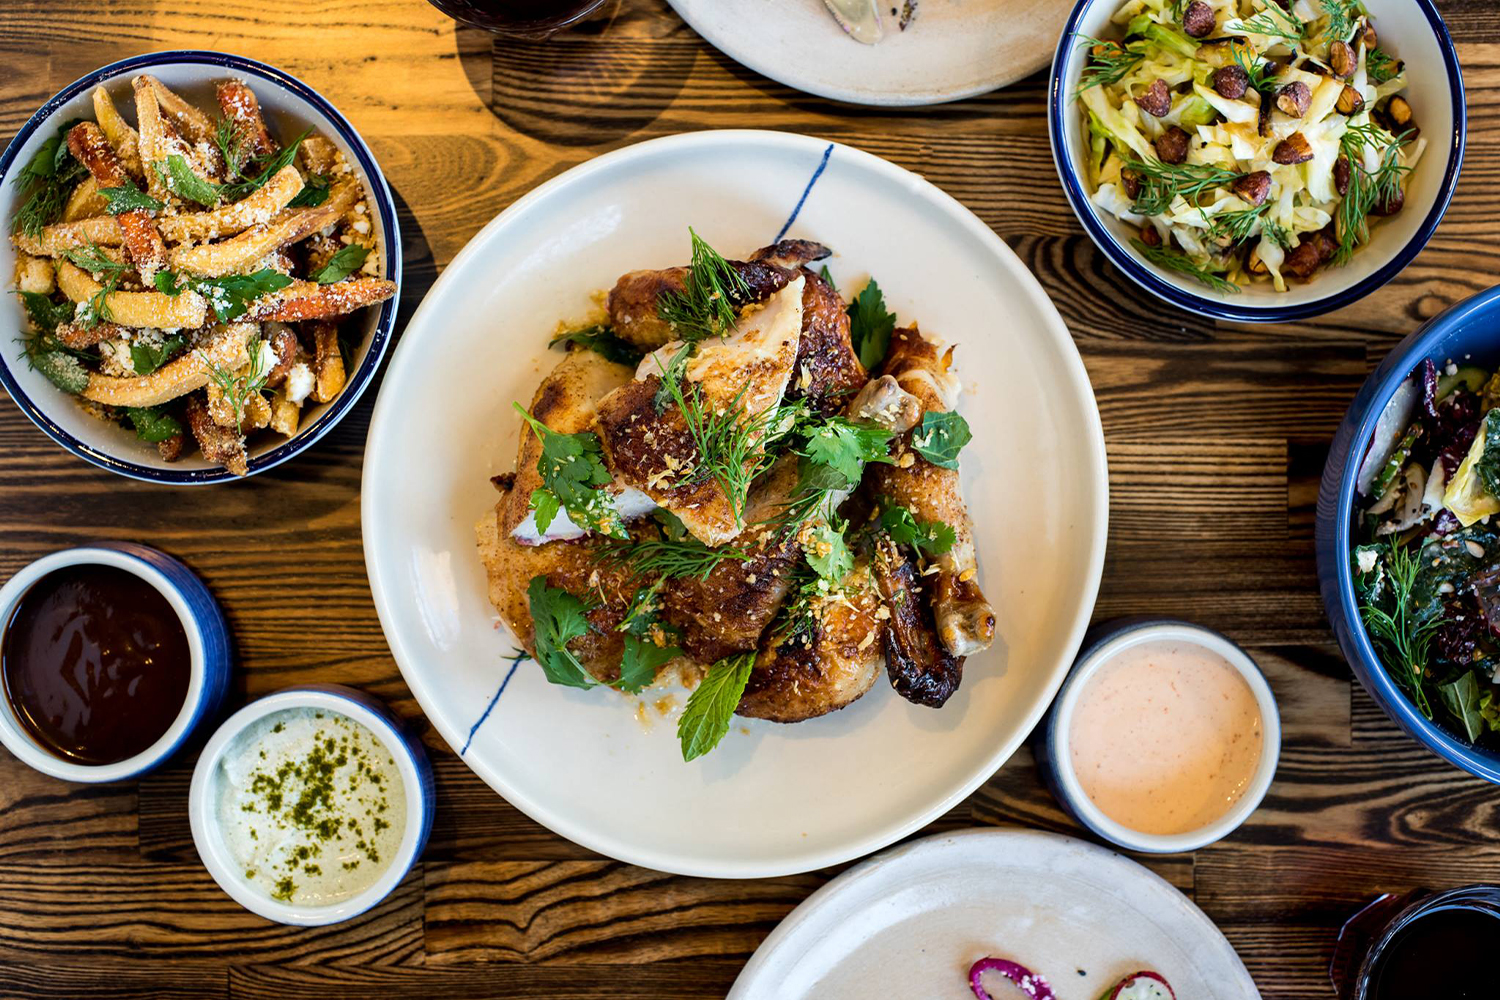 RT Rotisserie will offer their whole menu for delivery and takeout